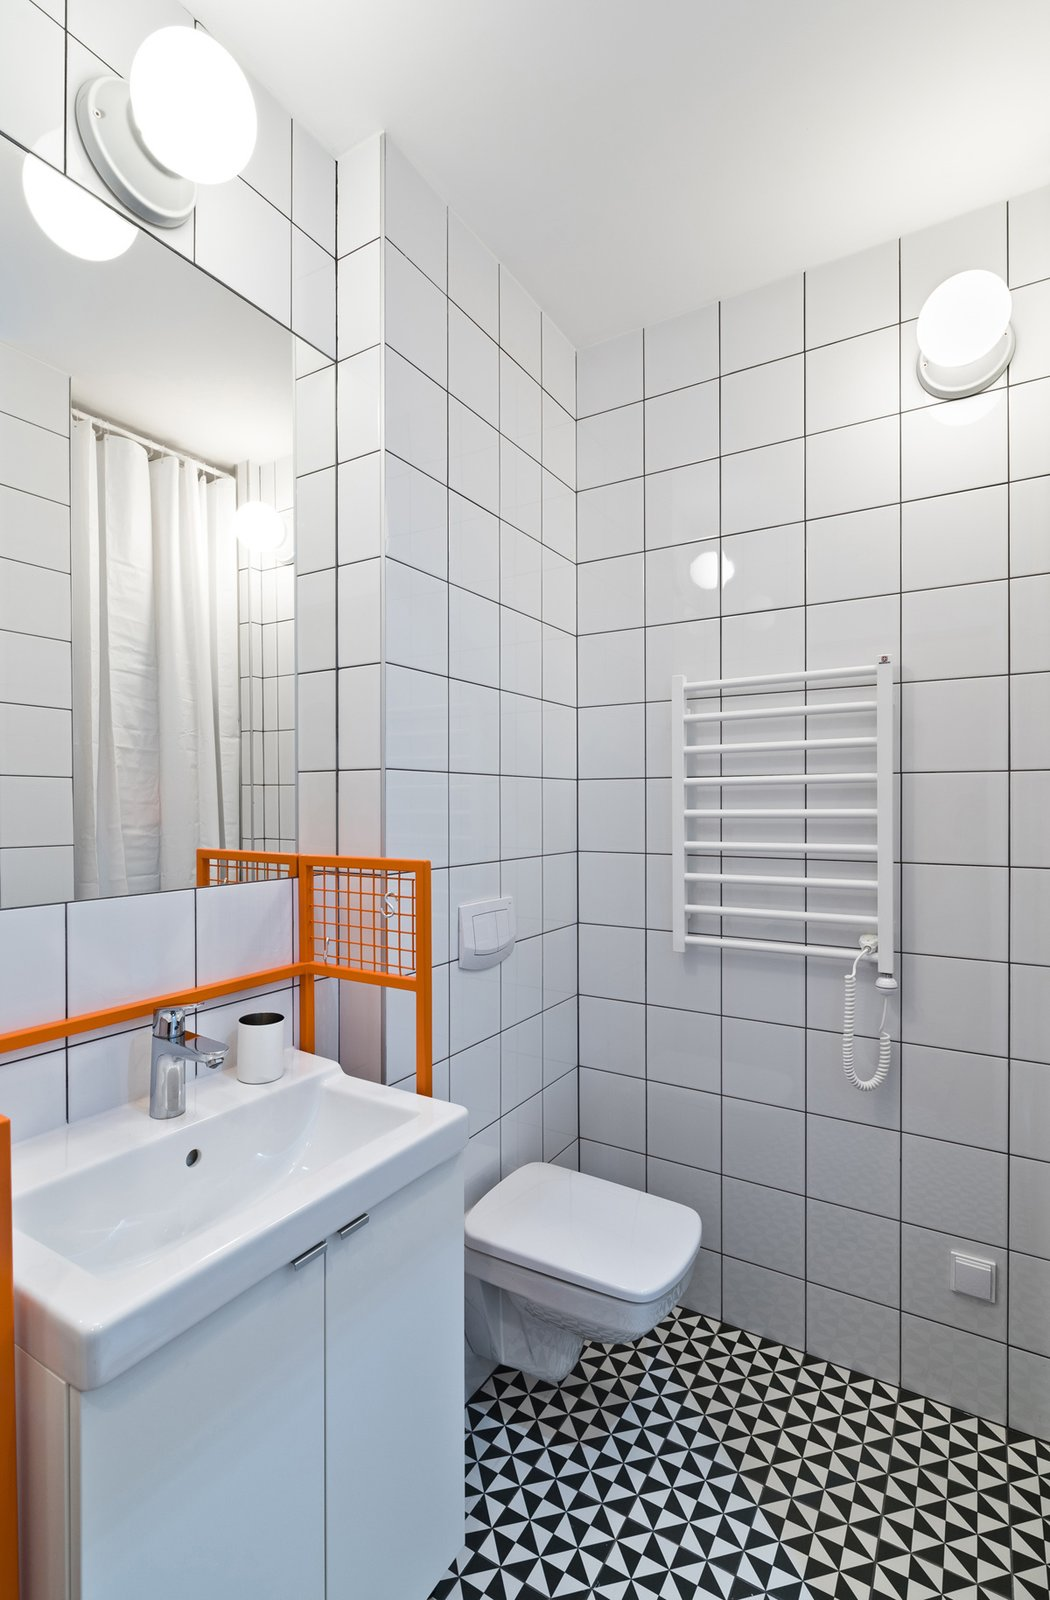 The bathroom features graphic eye-catching Vives floor tiles surrounded by Opoczno wall tiles and clean white plumbing fixtures. The custom-designed orange sink frame adds a whimsical pop of color. Our Dorm Definitely Did Not Look Like This - Photo 6 of 7